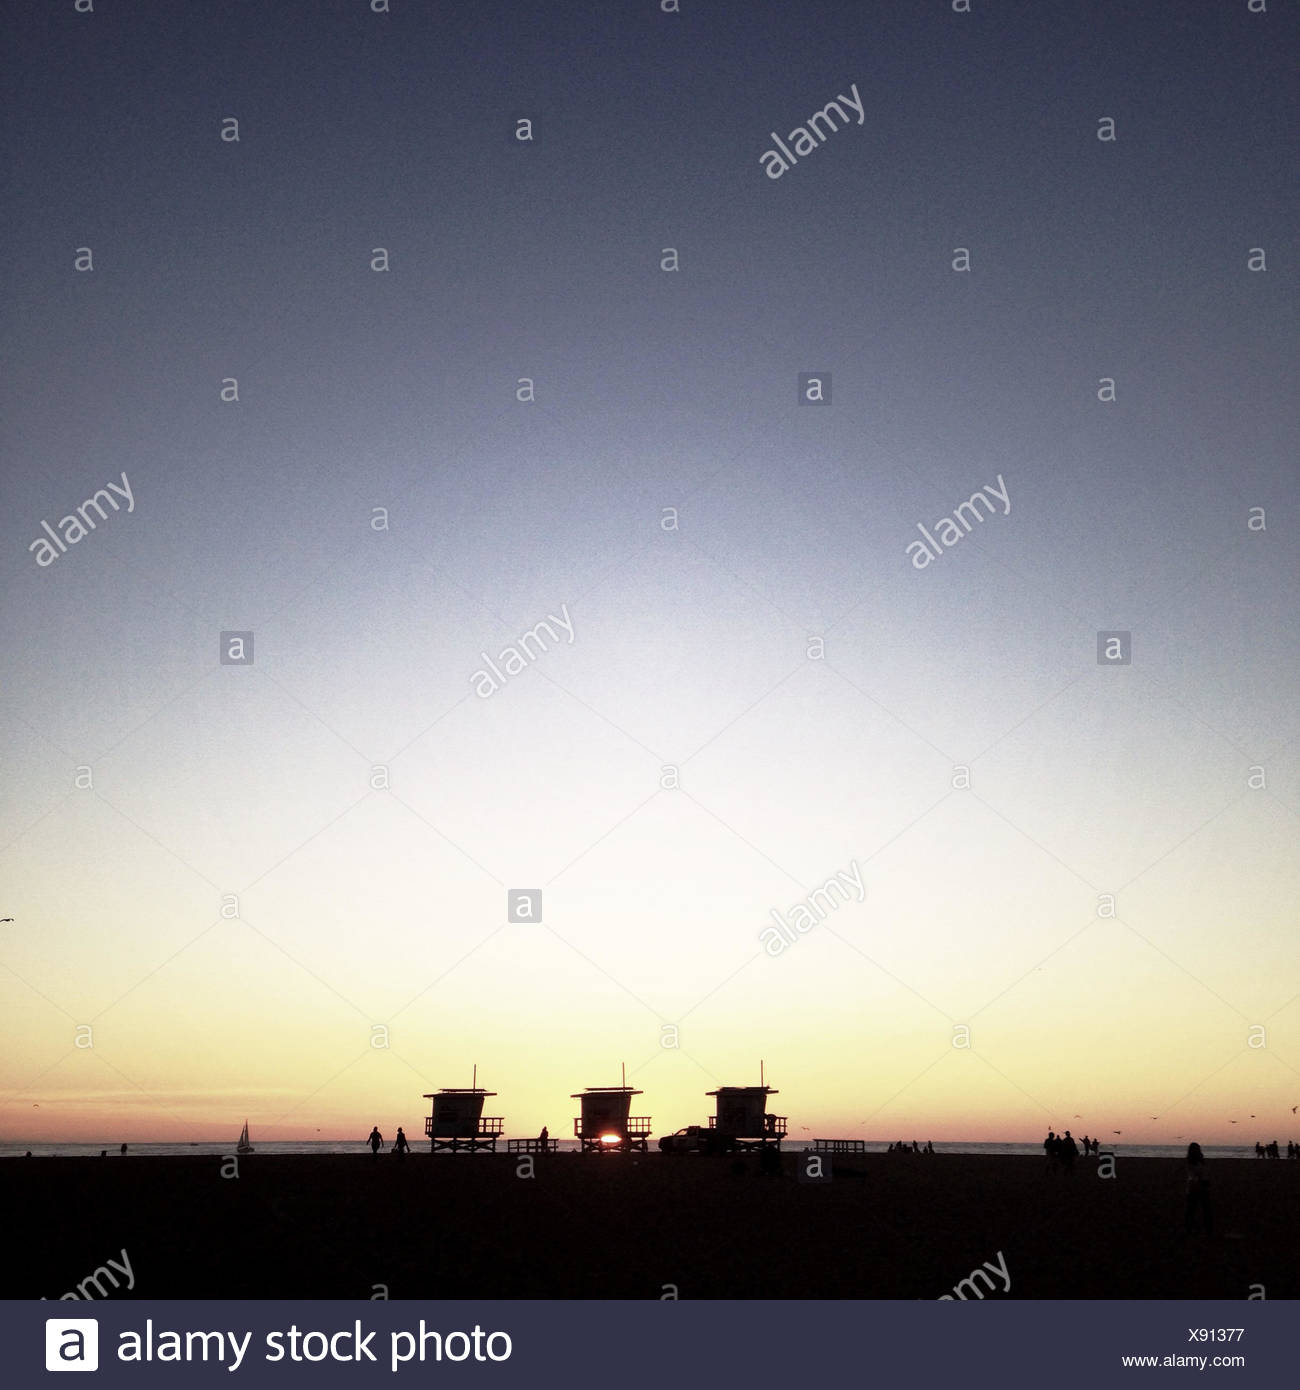 Silhouette of beach huts - Stock Image